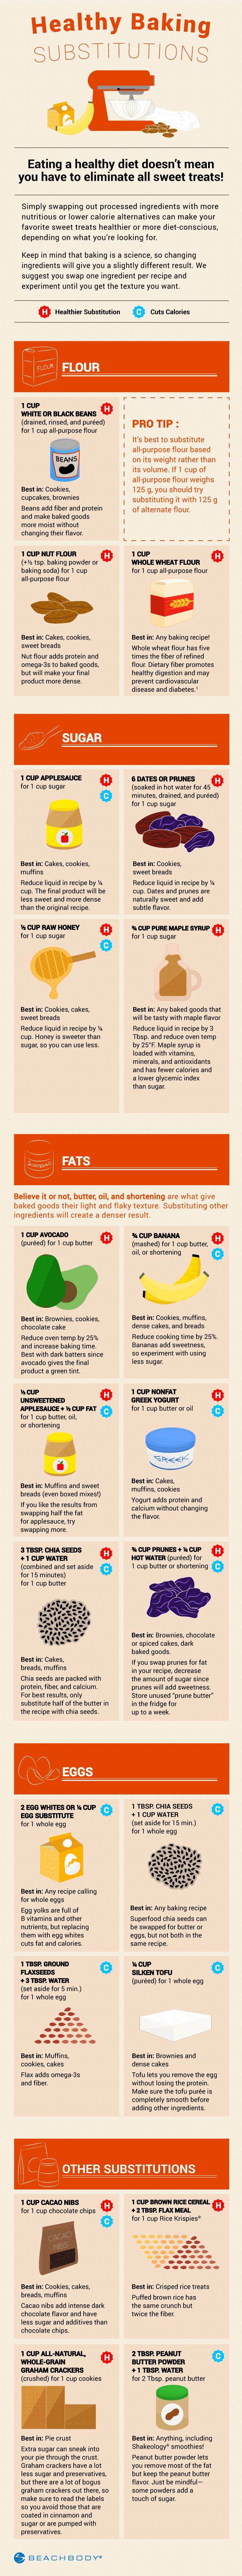 Butter substitute baking infographic